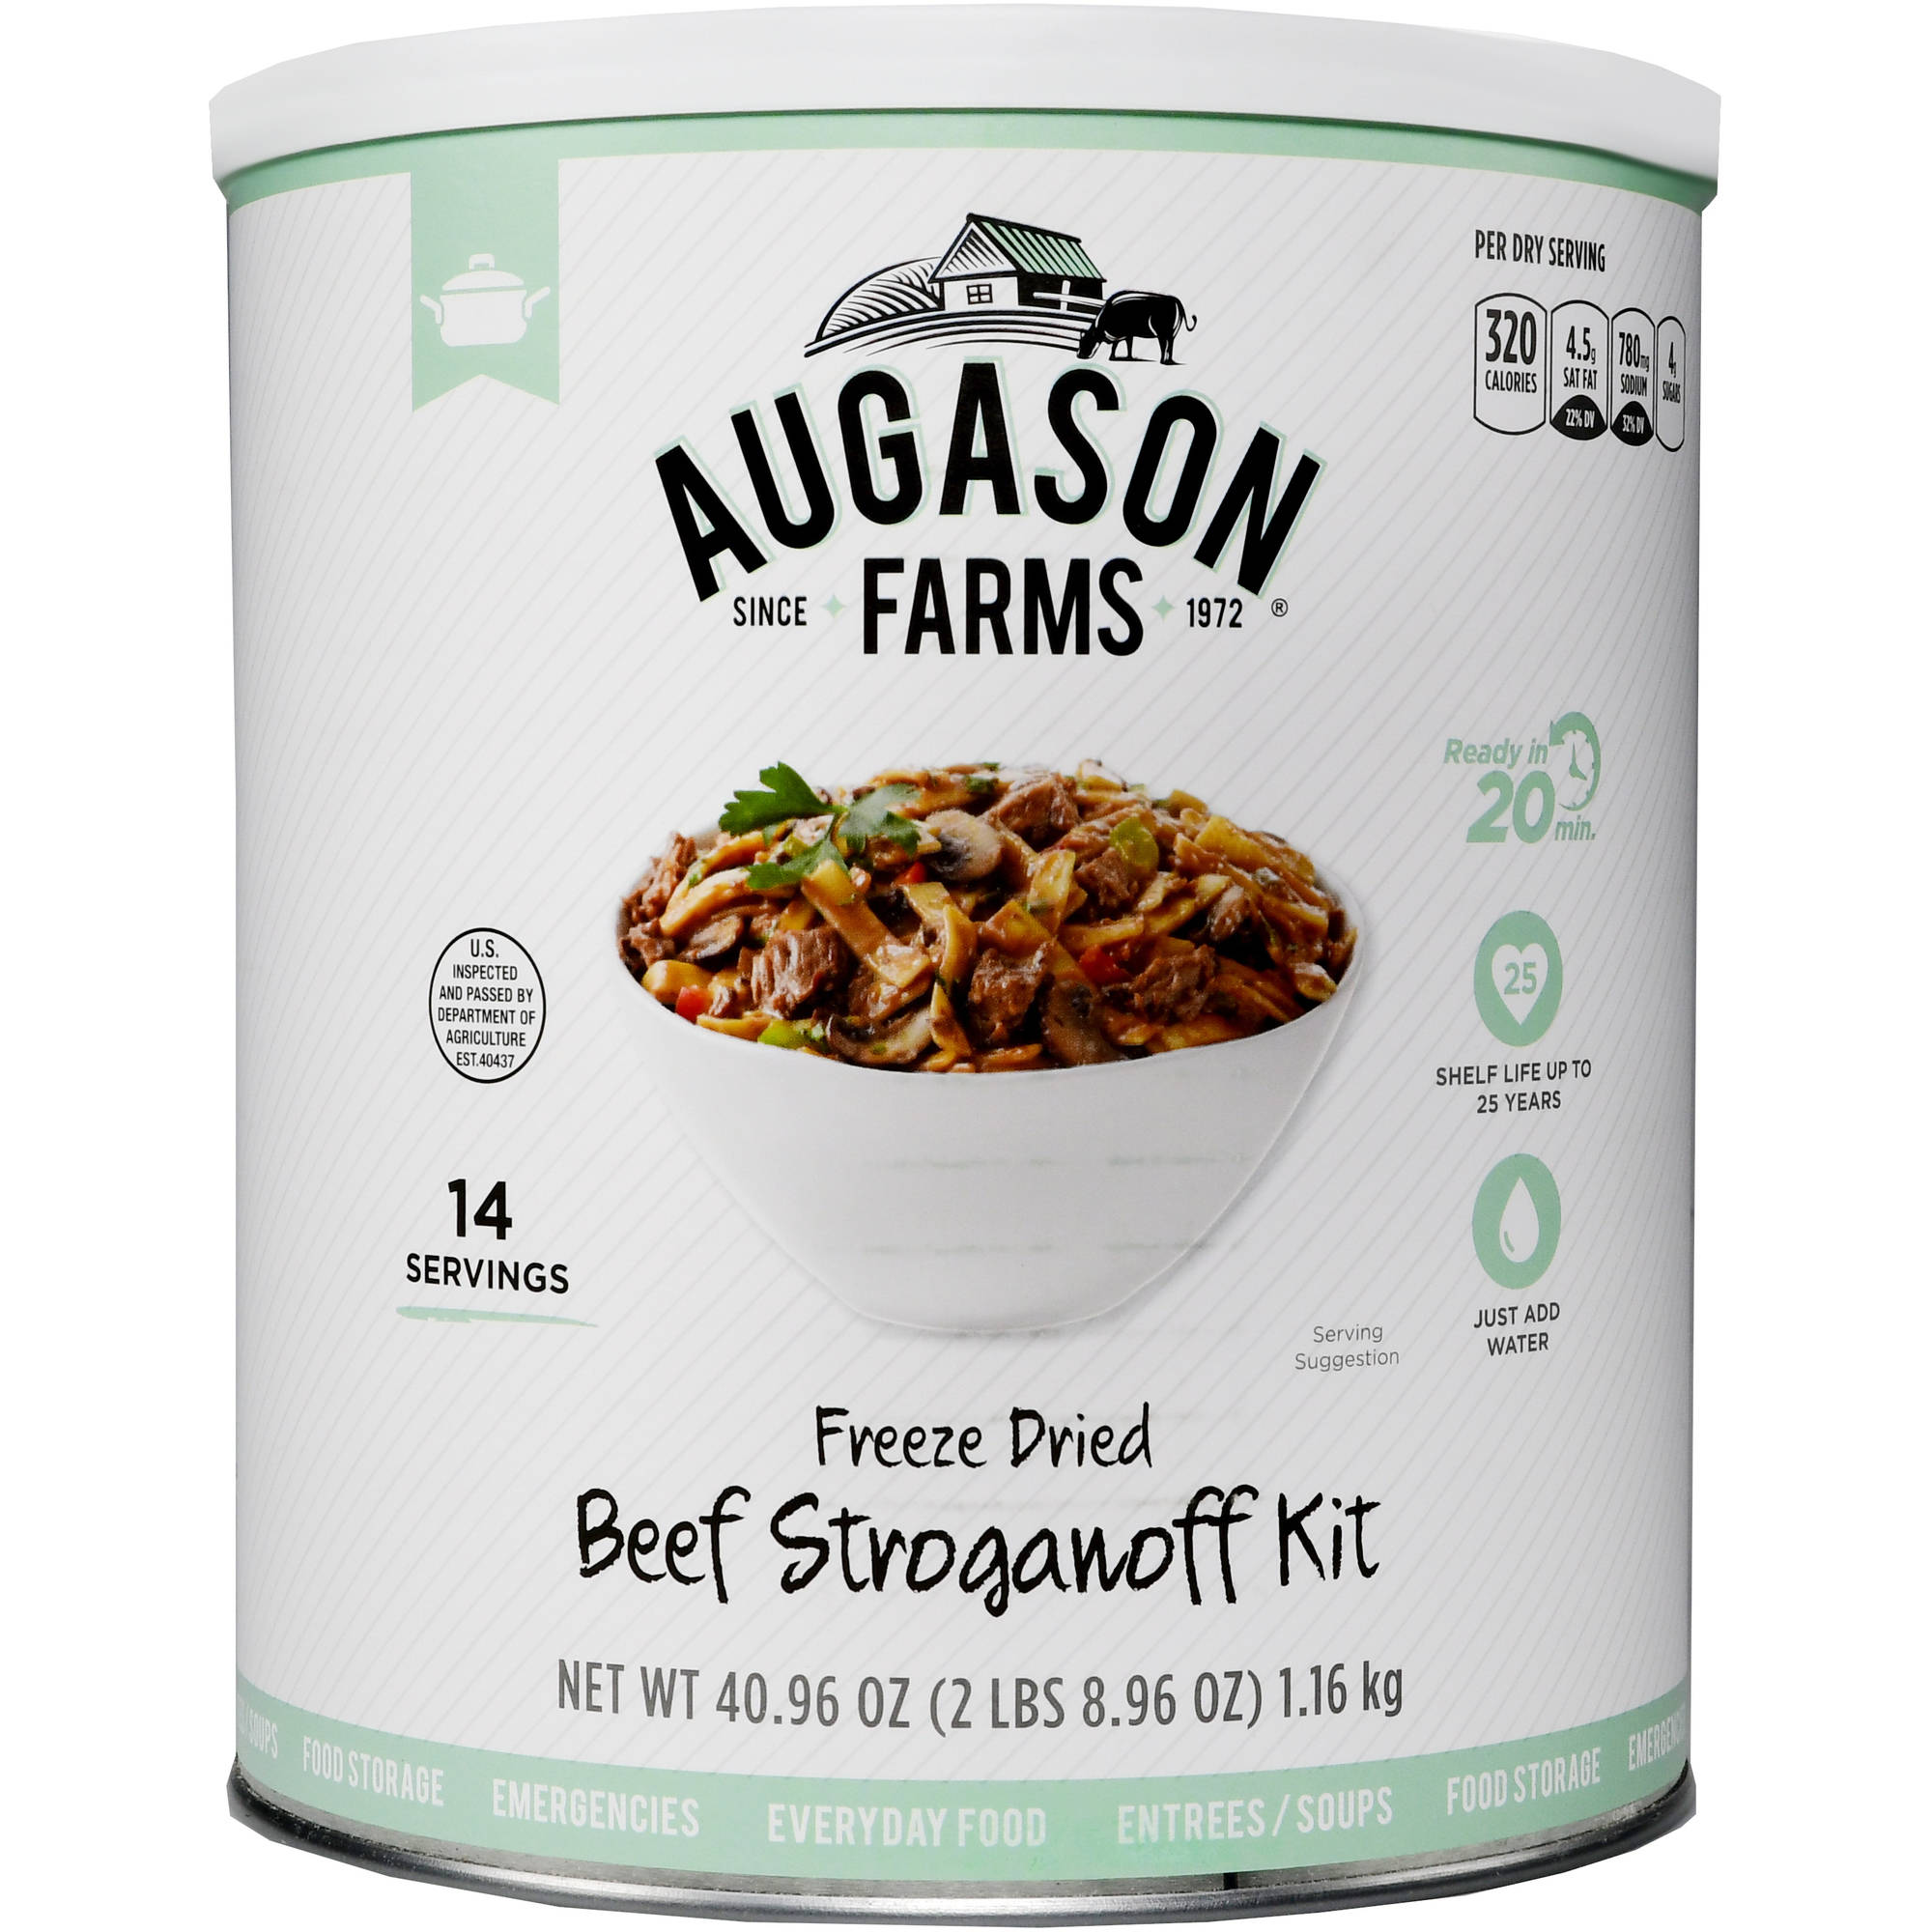 Augason Farms Emergency Food Freeze Dried Beef Stroganoff Meal Kit, 40.96 oz